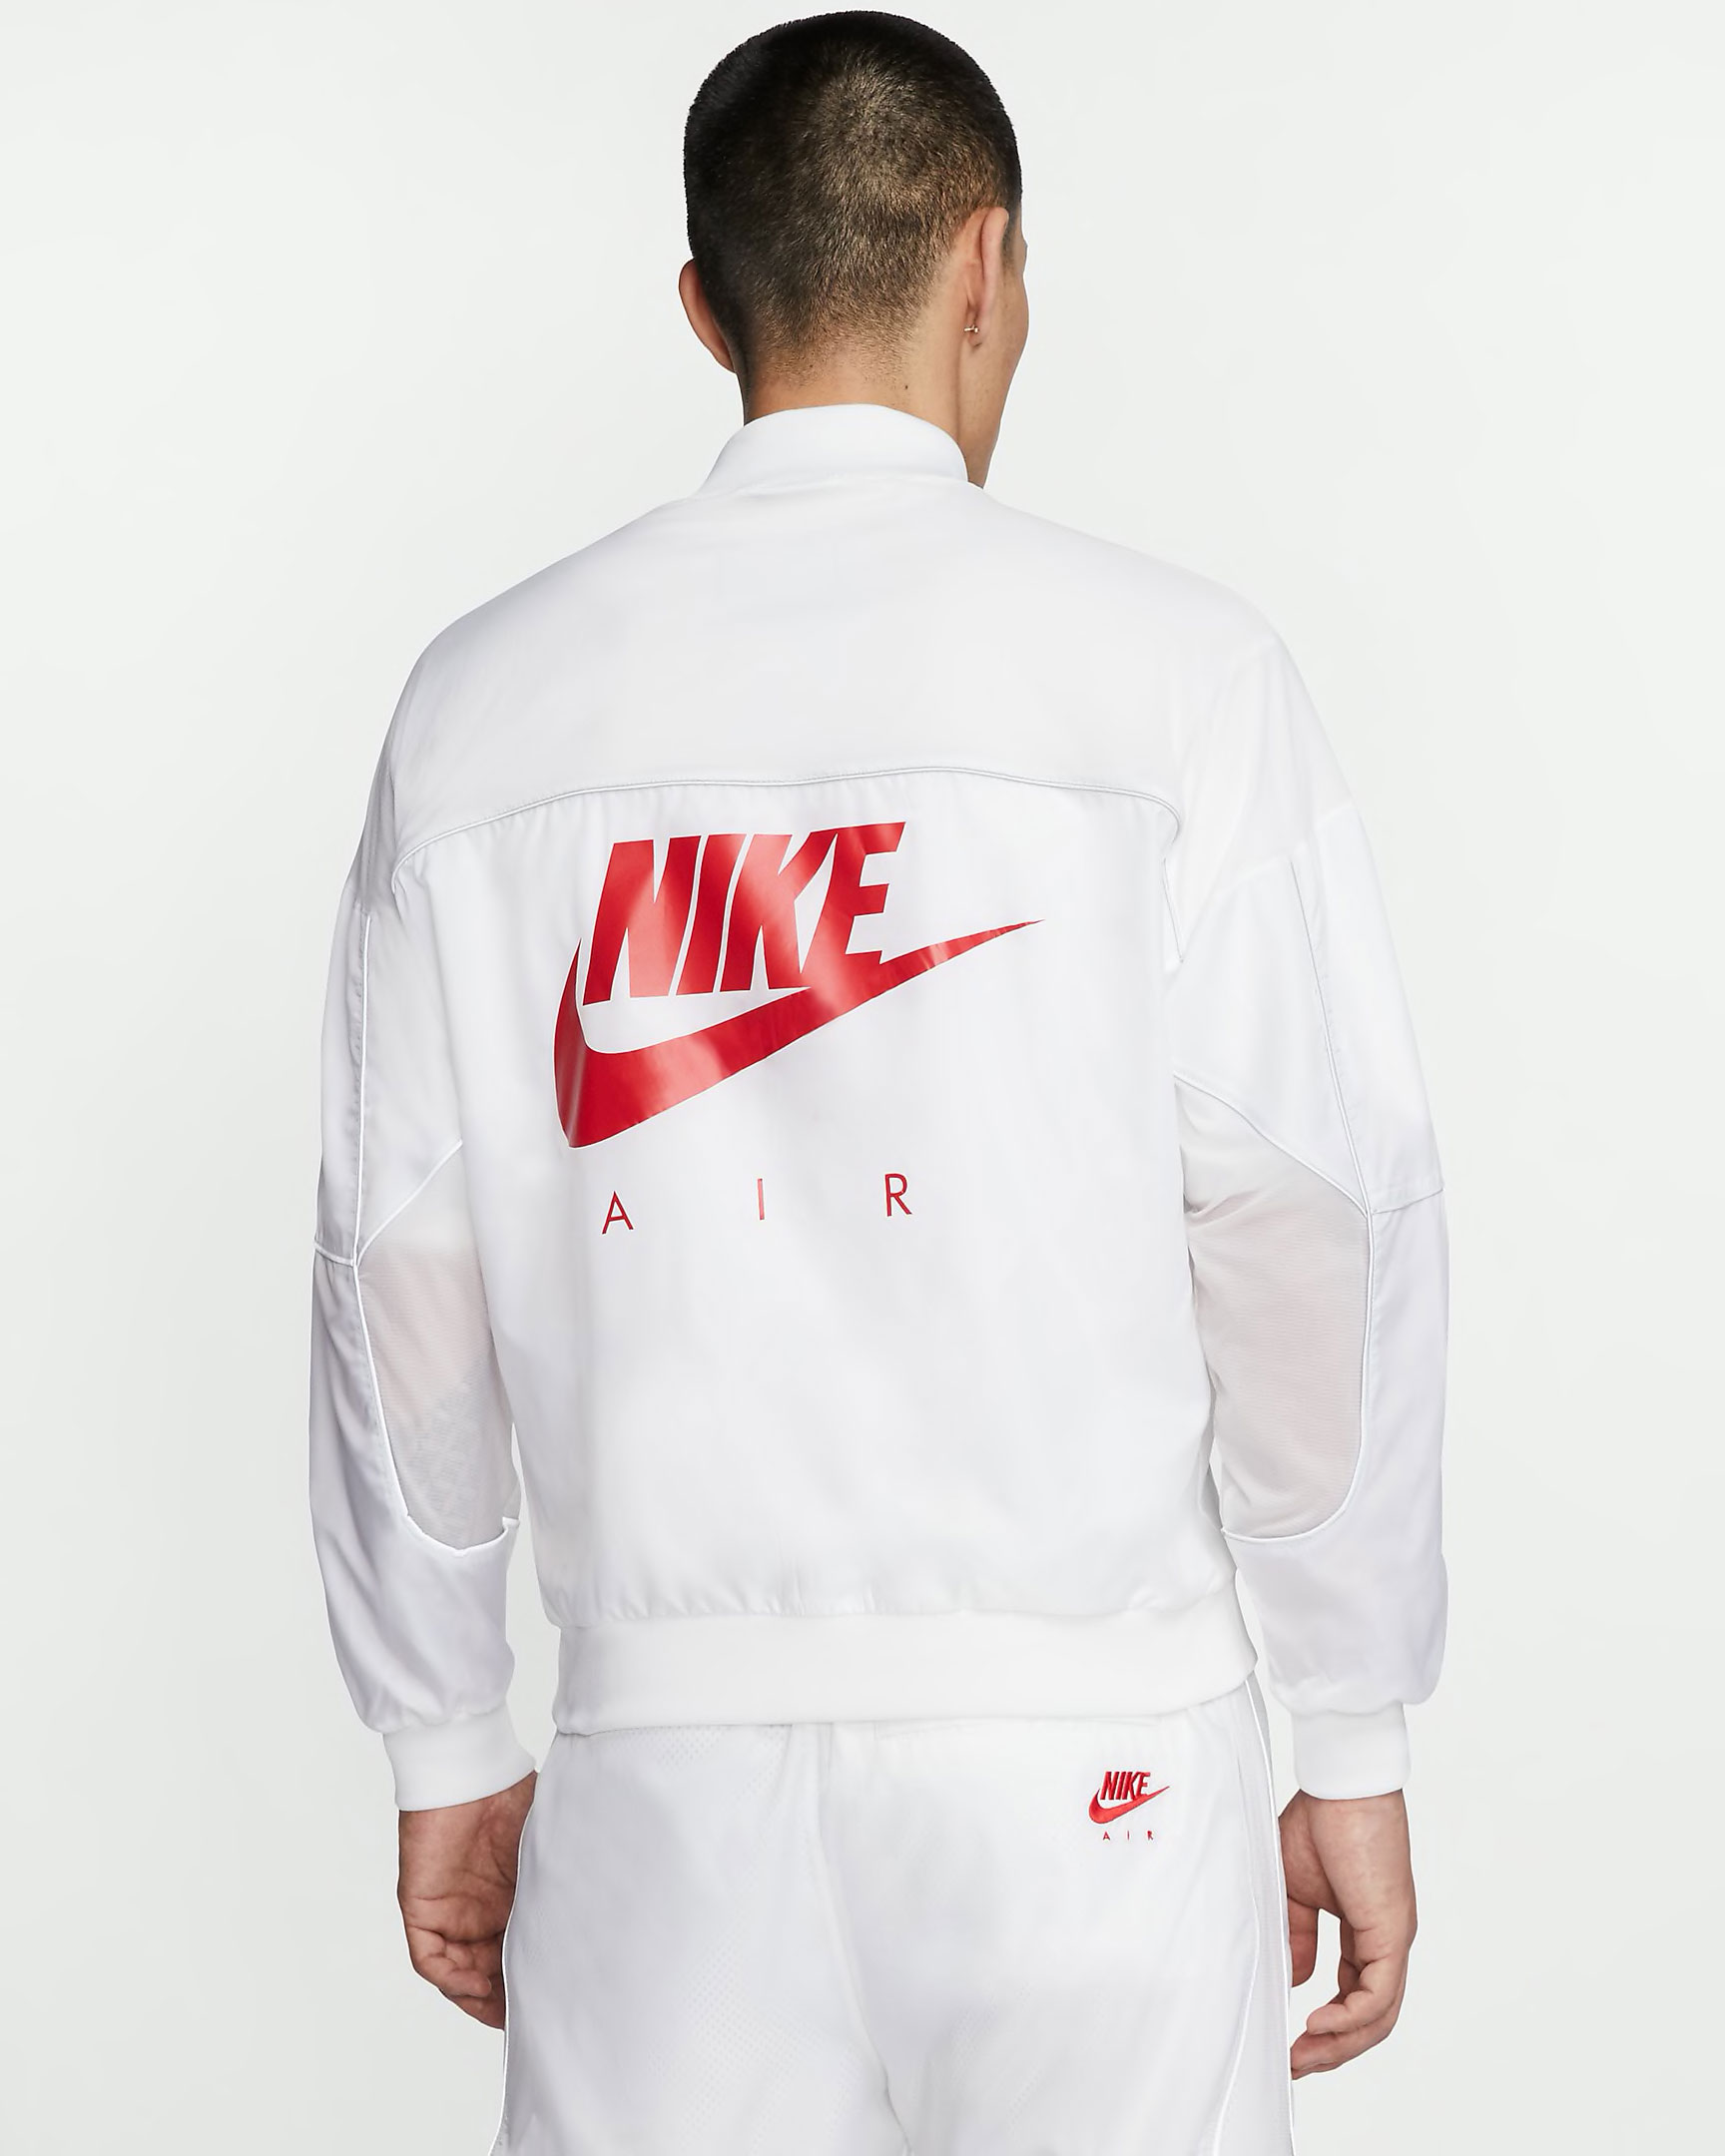 air-jordan-5-fire-red-2020-jacket-white-red-2